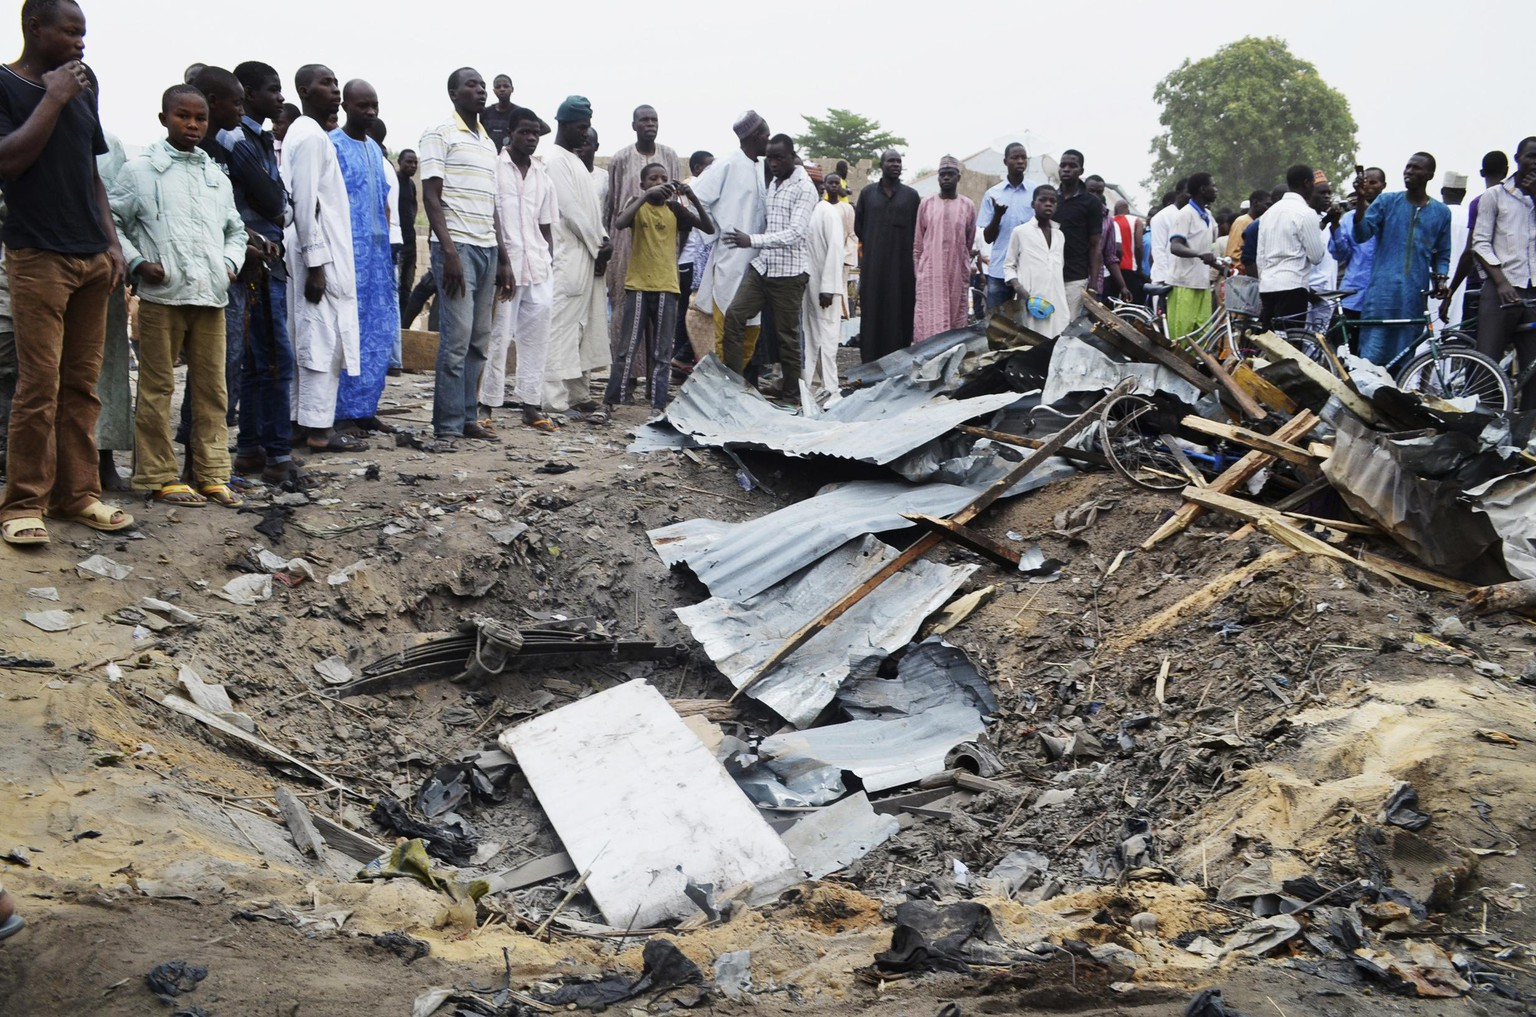 People gather around a crater created after an explosion of one of two vehicles laden with explosives in Ajilari-Gomari near the city's airport, in Maiduguri March 2, 2014. At least 10 people were killed after a bomb went off at around 6 p.m. (1700 GMT) on Saturday in a busy market area in Ajilari-Gomari, in Maiduguri, witnesses and a police source said, in a region where the Islamist sect Boko Haram is pursuing a bloody insurgency. The final death toll was likely to be higher because dozens of people were trapped in the rubble, the witnesses said. REUTERS/Stringer (NIGERIA - Tags: CIVIL UNREST POLITICS)